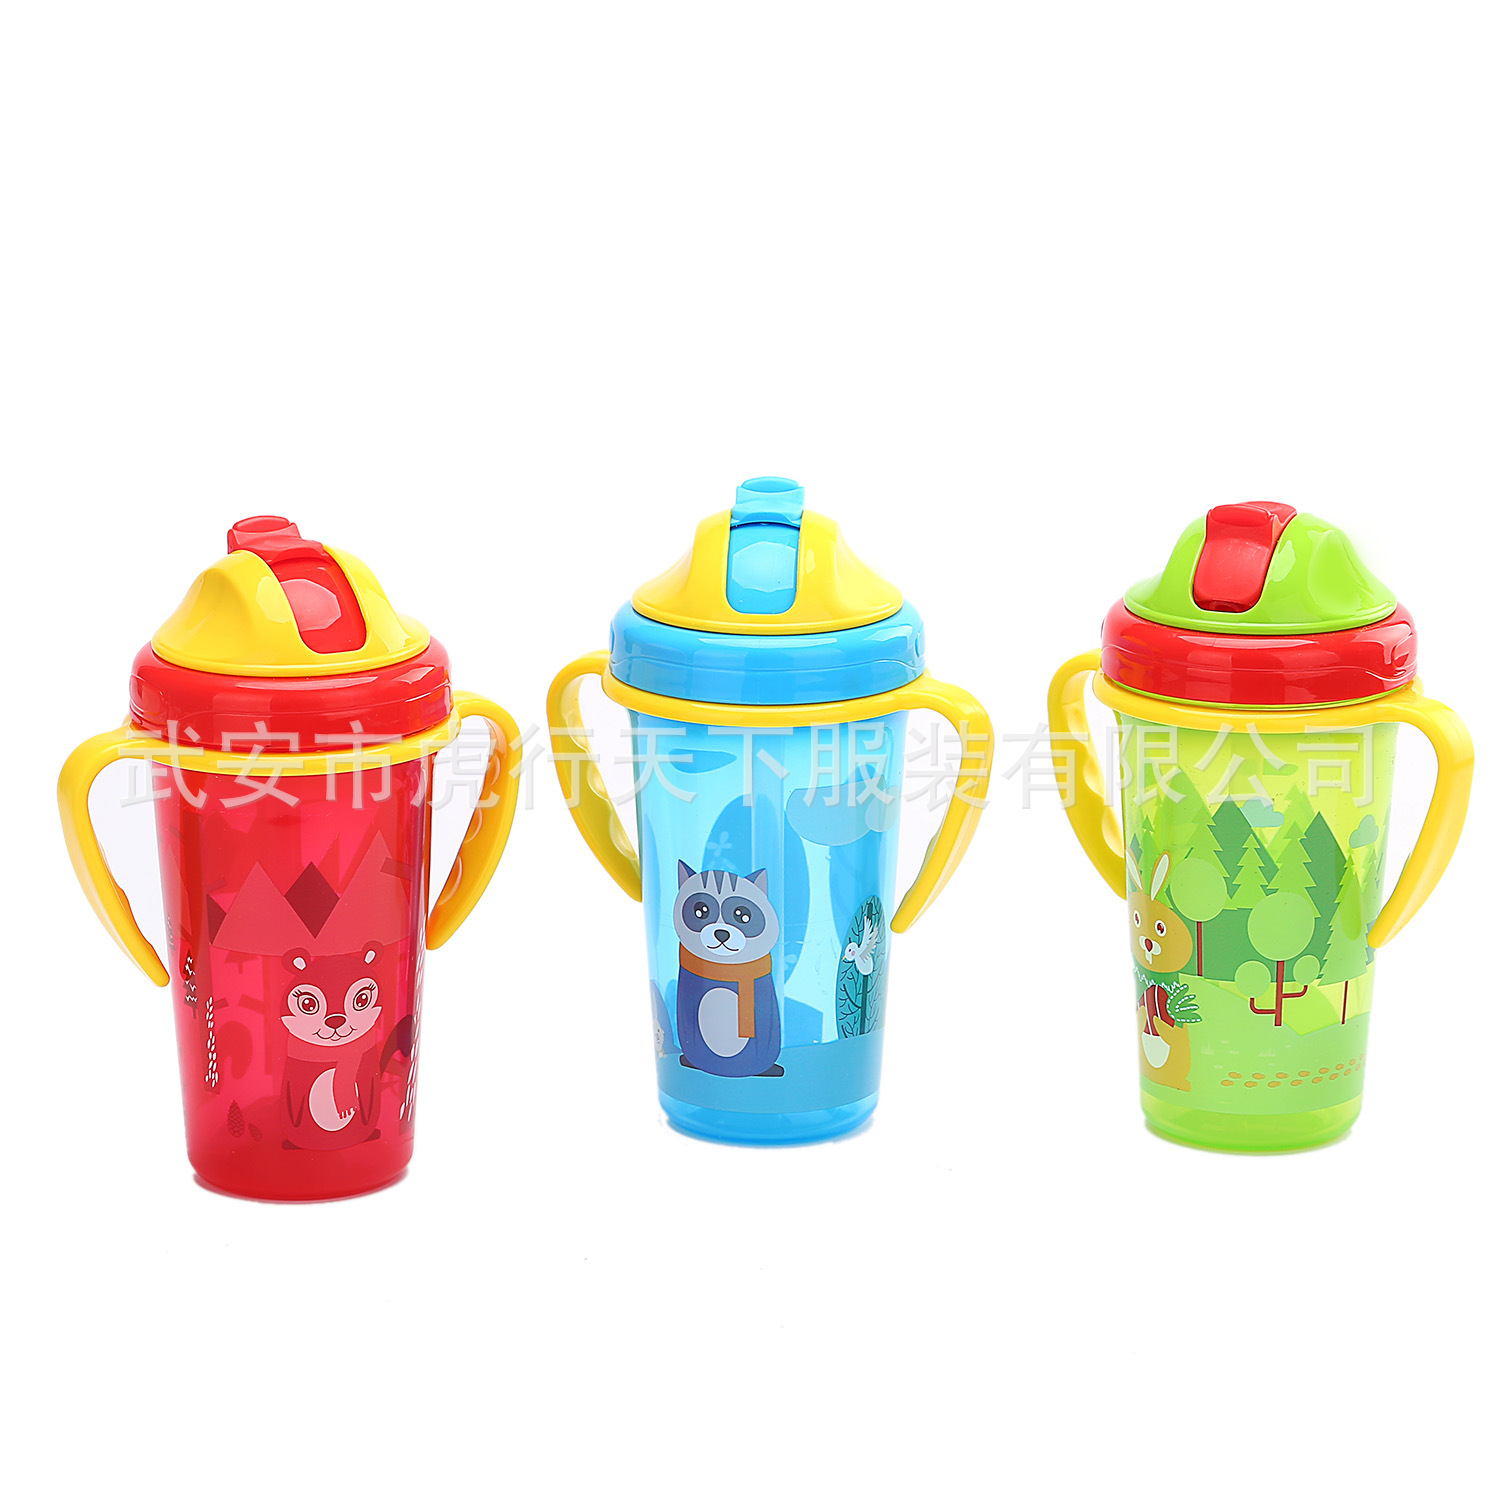 Ali Bunny With Handle Cup With Straw Infant Sippy Cup Baby Straw Kettle Training Pitcher 300 Ml